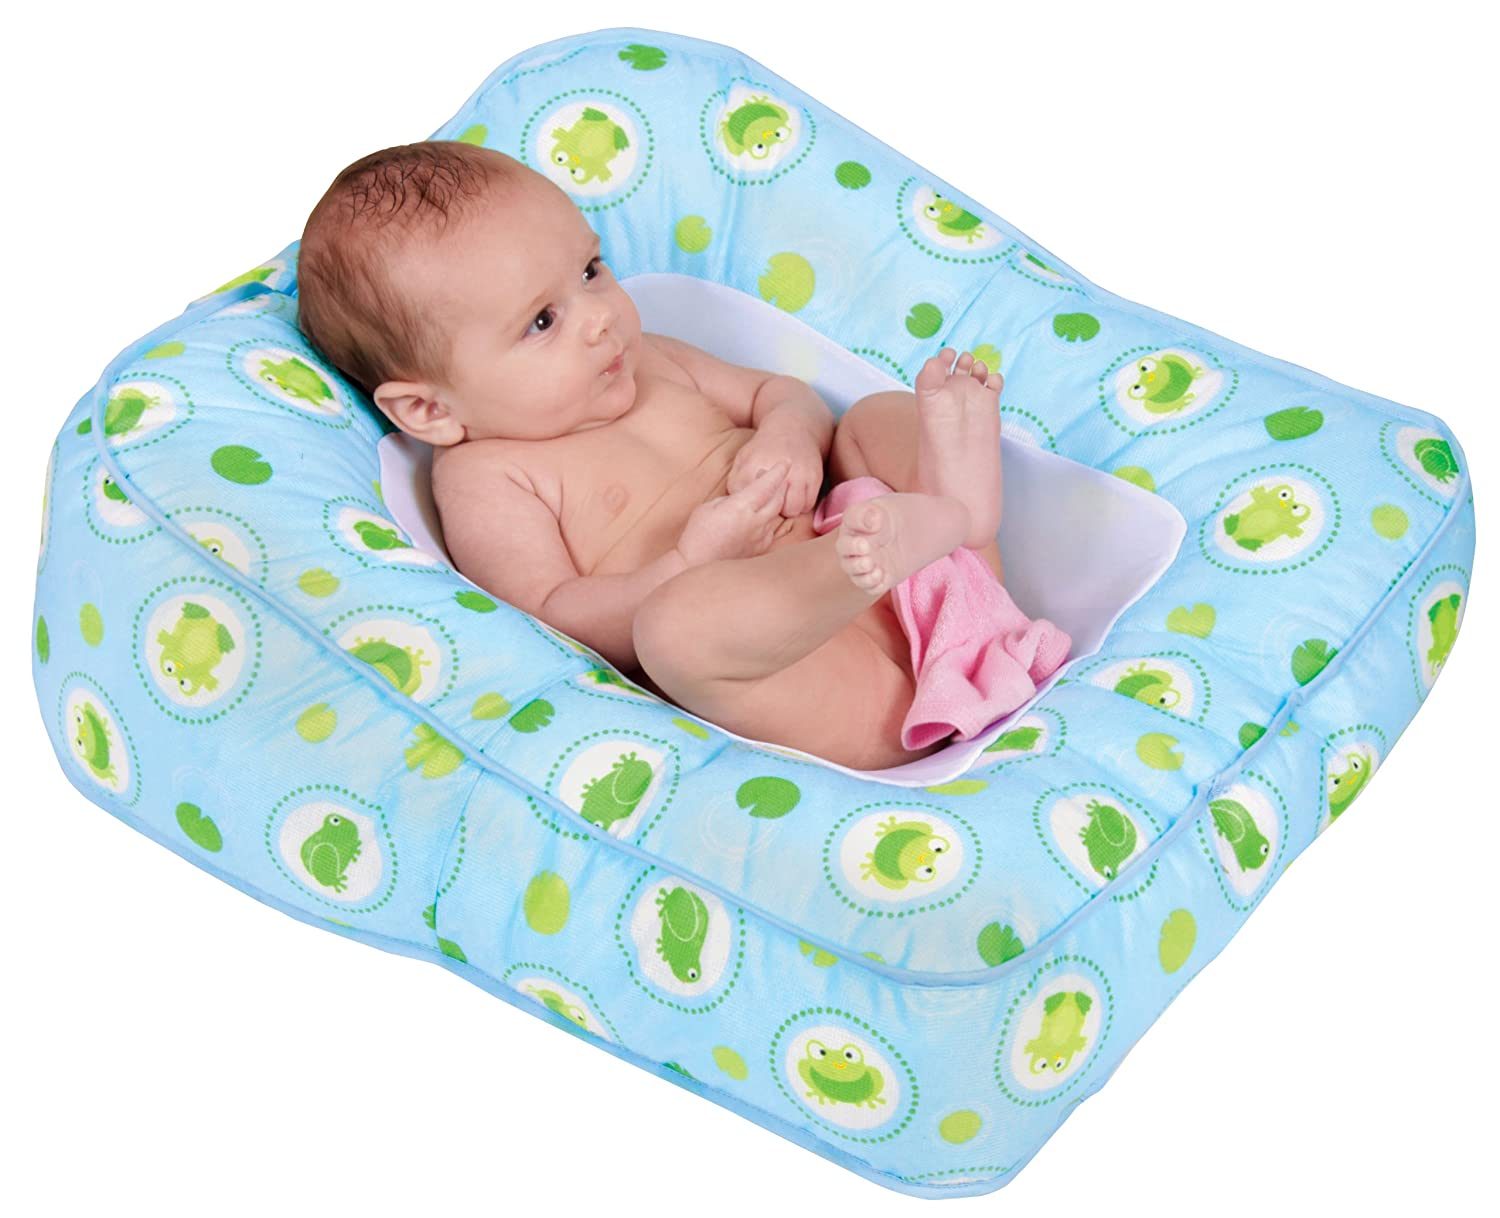 Amazon.com : Leachco Flipper 2-Way Baby Bather -Frog Pond : Baby ...